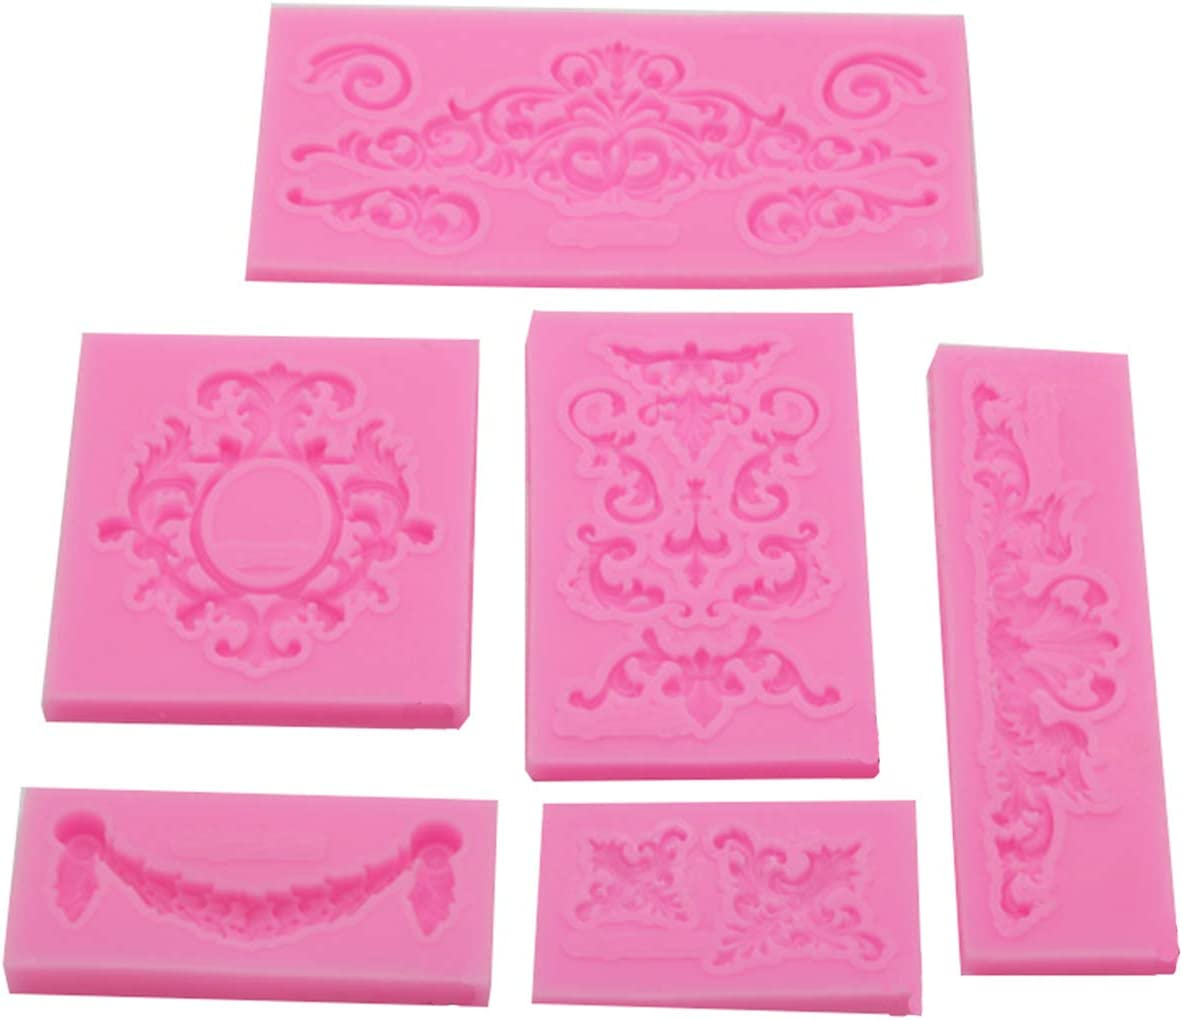 Pearl Fondant Mold,Lace Silicone Mold for Cake Decorating Sugarcraft Baking Mould Cookie Pastry Pies Cake Toppers (6 Pack)